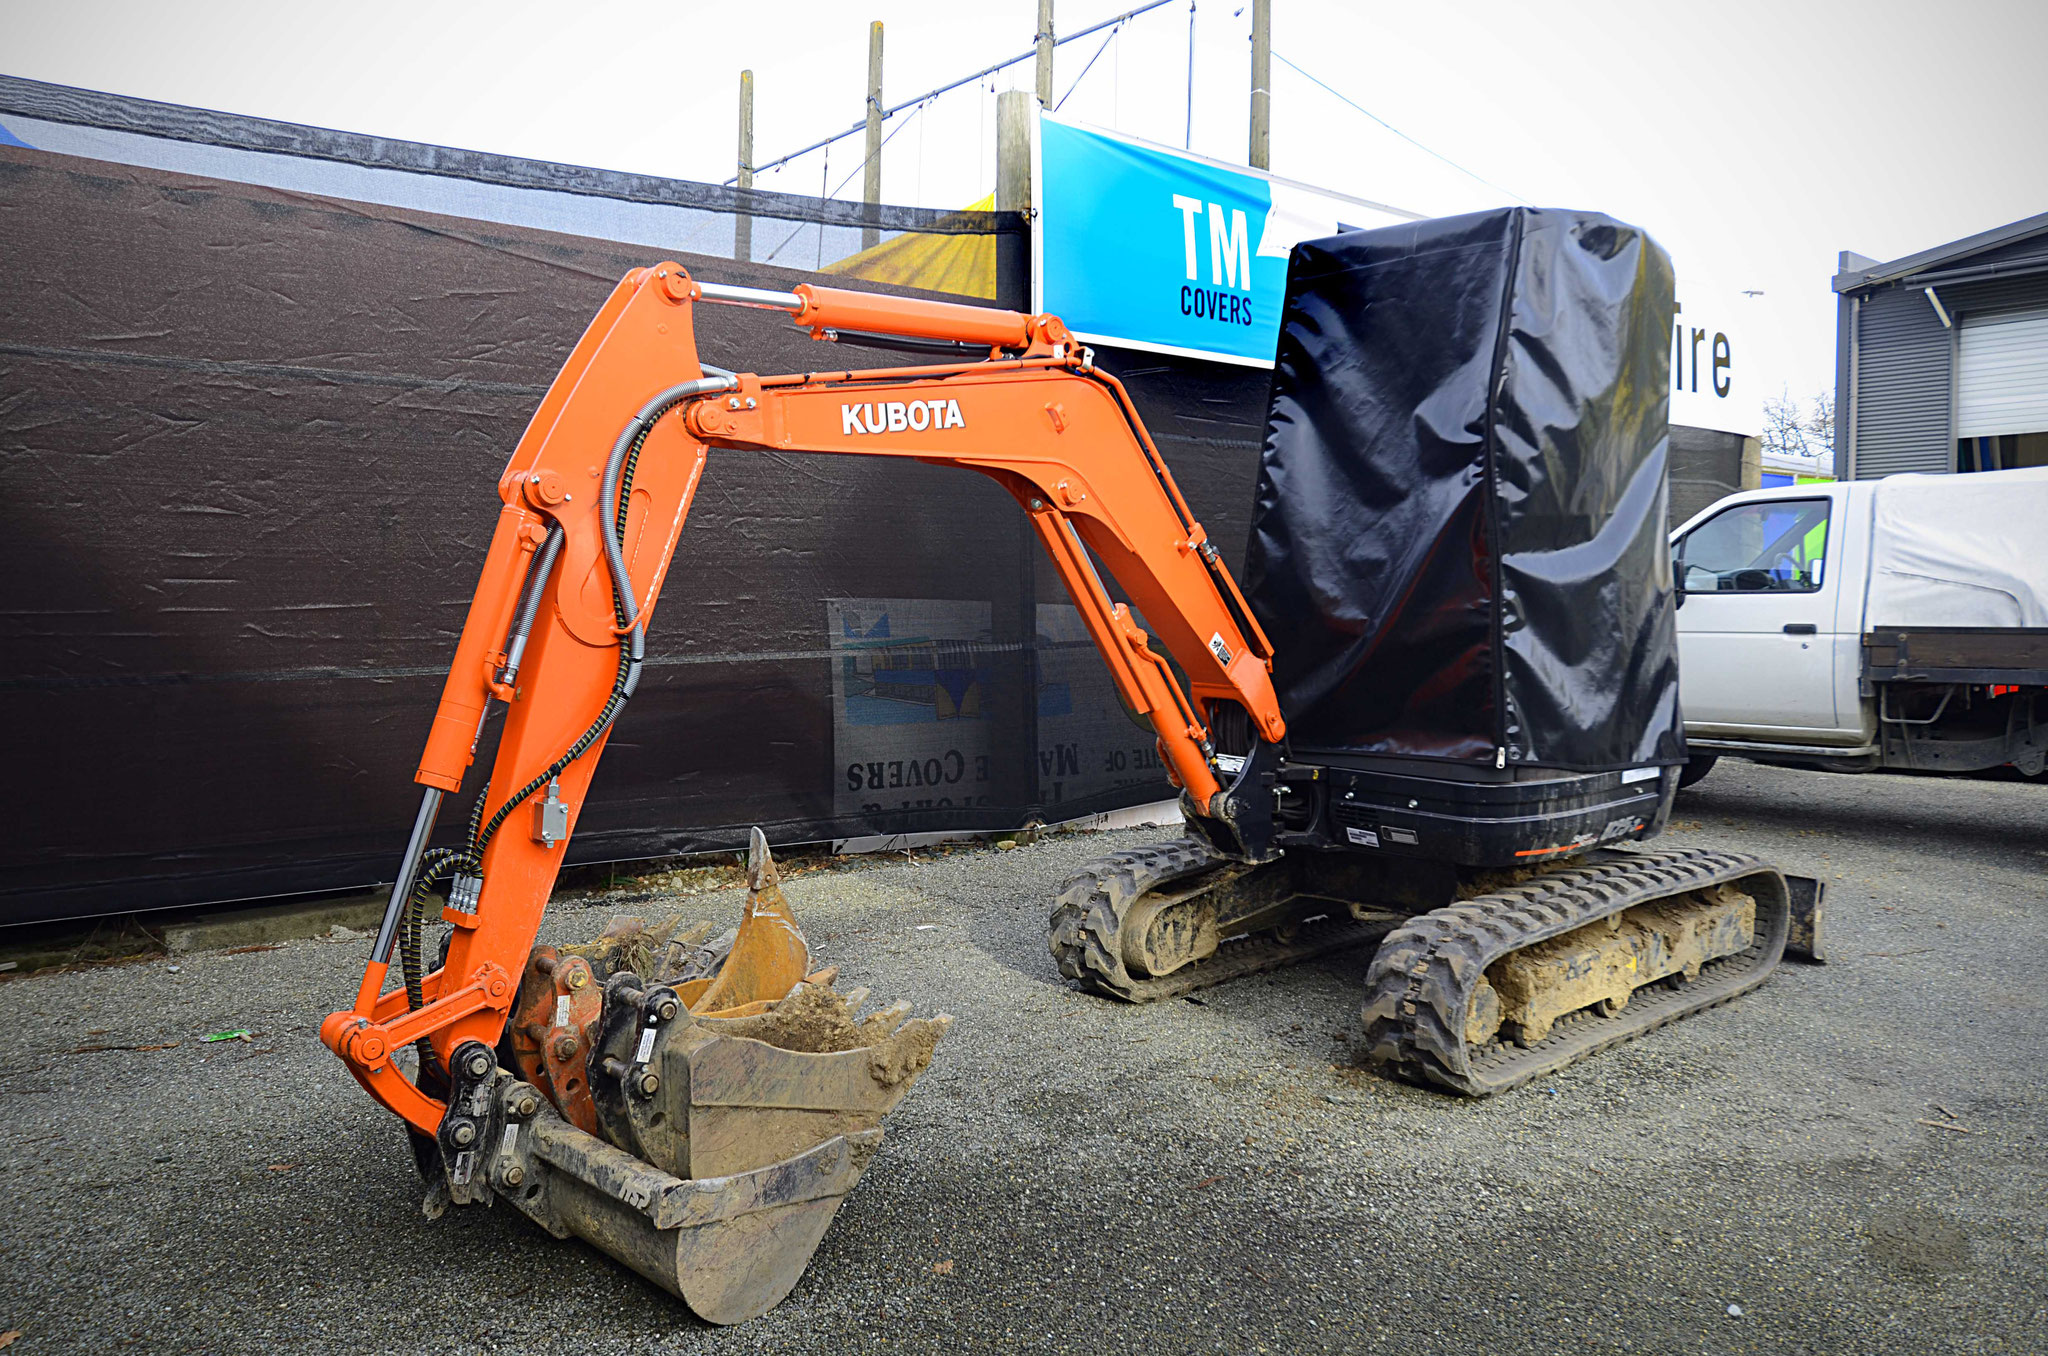 Digger Cover, New Zealand